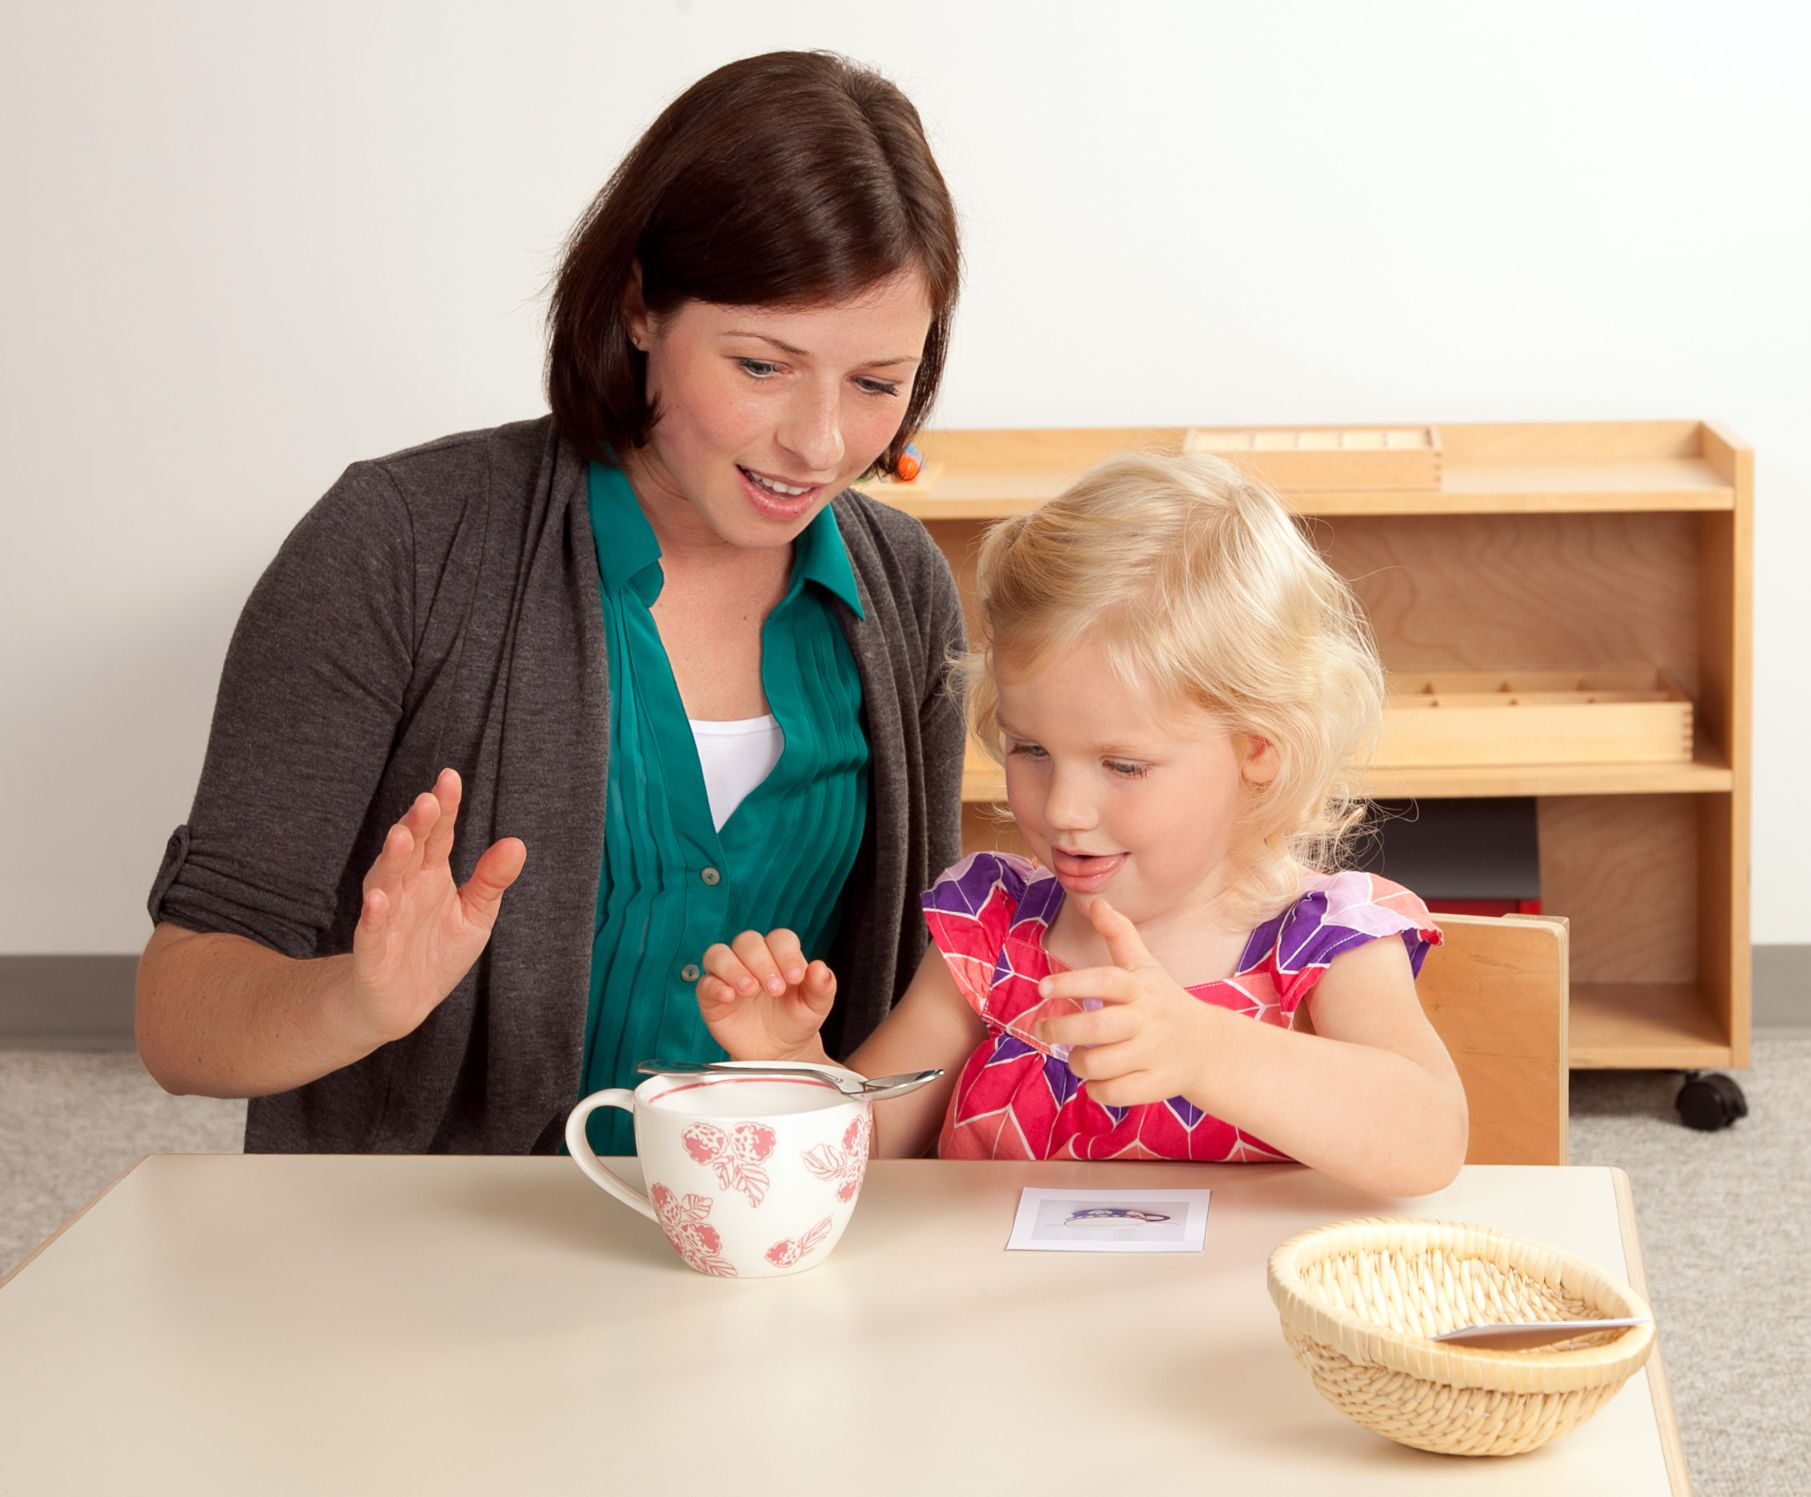 Complimentary Montessori Homeschool Activity Teacher And Child Using Spatial Relationships